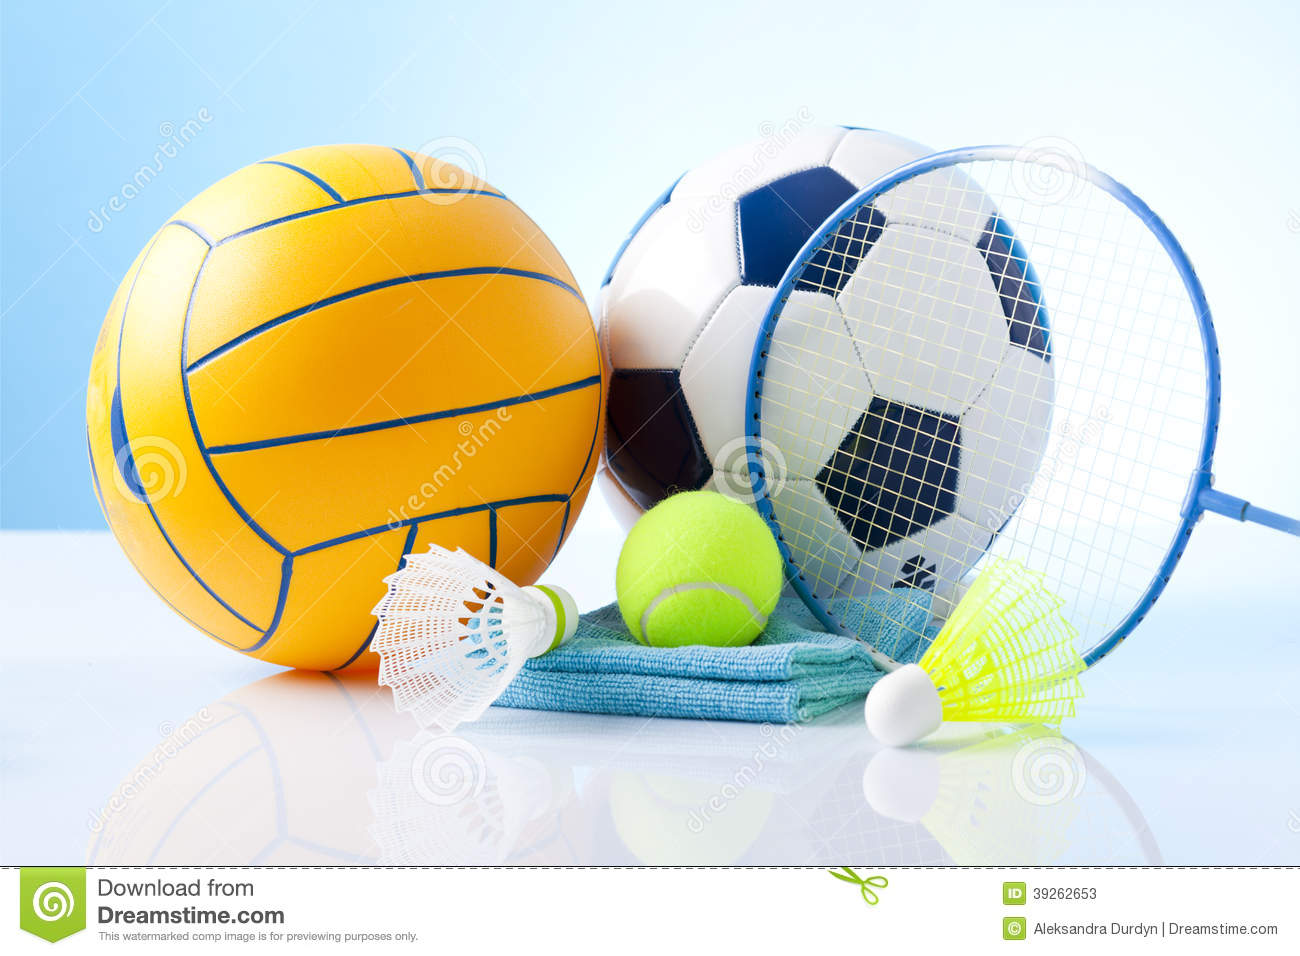 Background Abstract Volleyball Blue Yellow Ball Frame: Sport Equipment On Blue Background Stock Photo